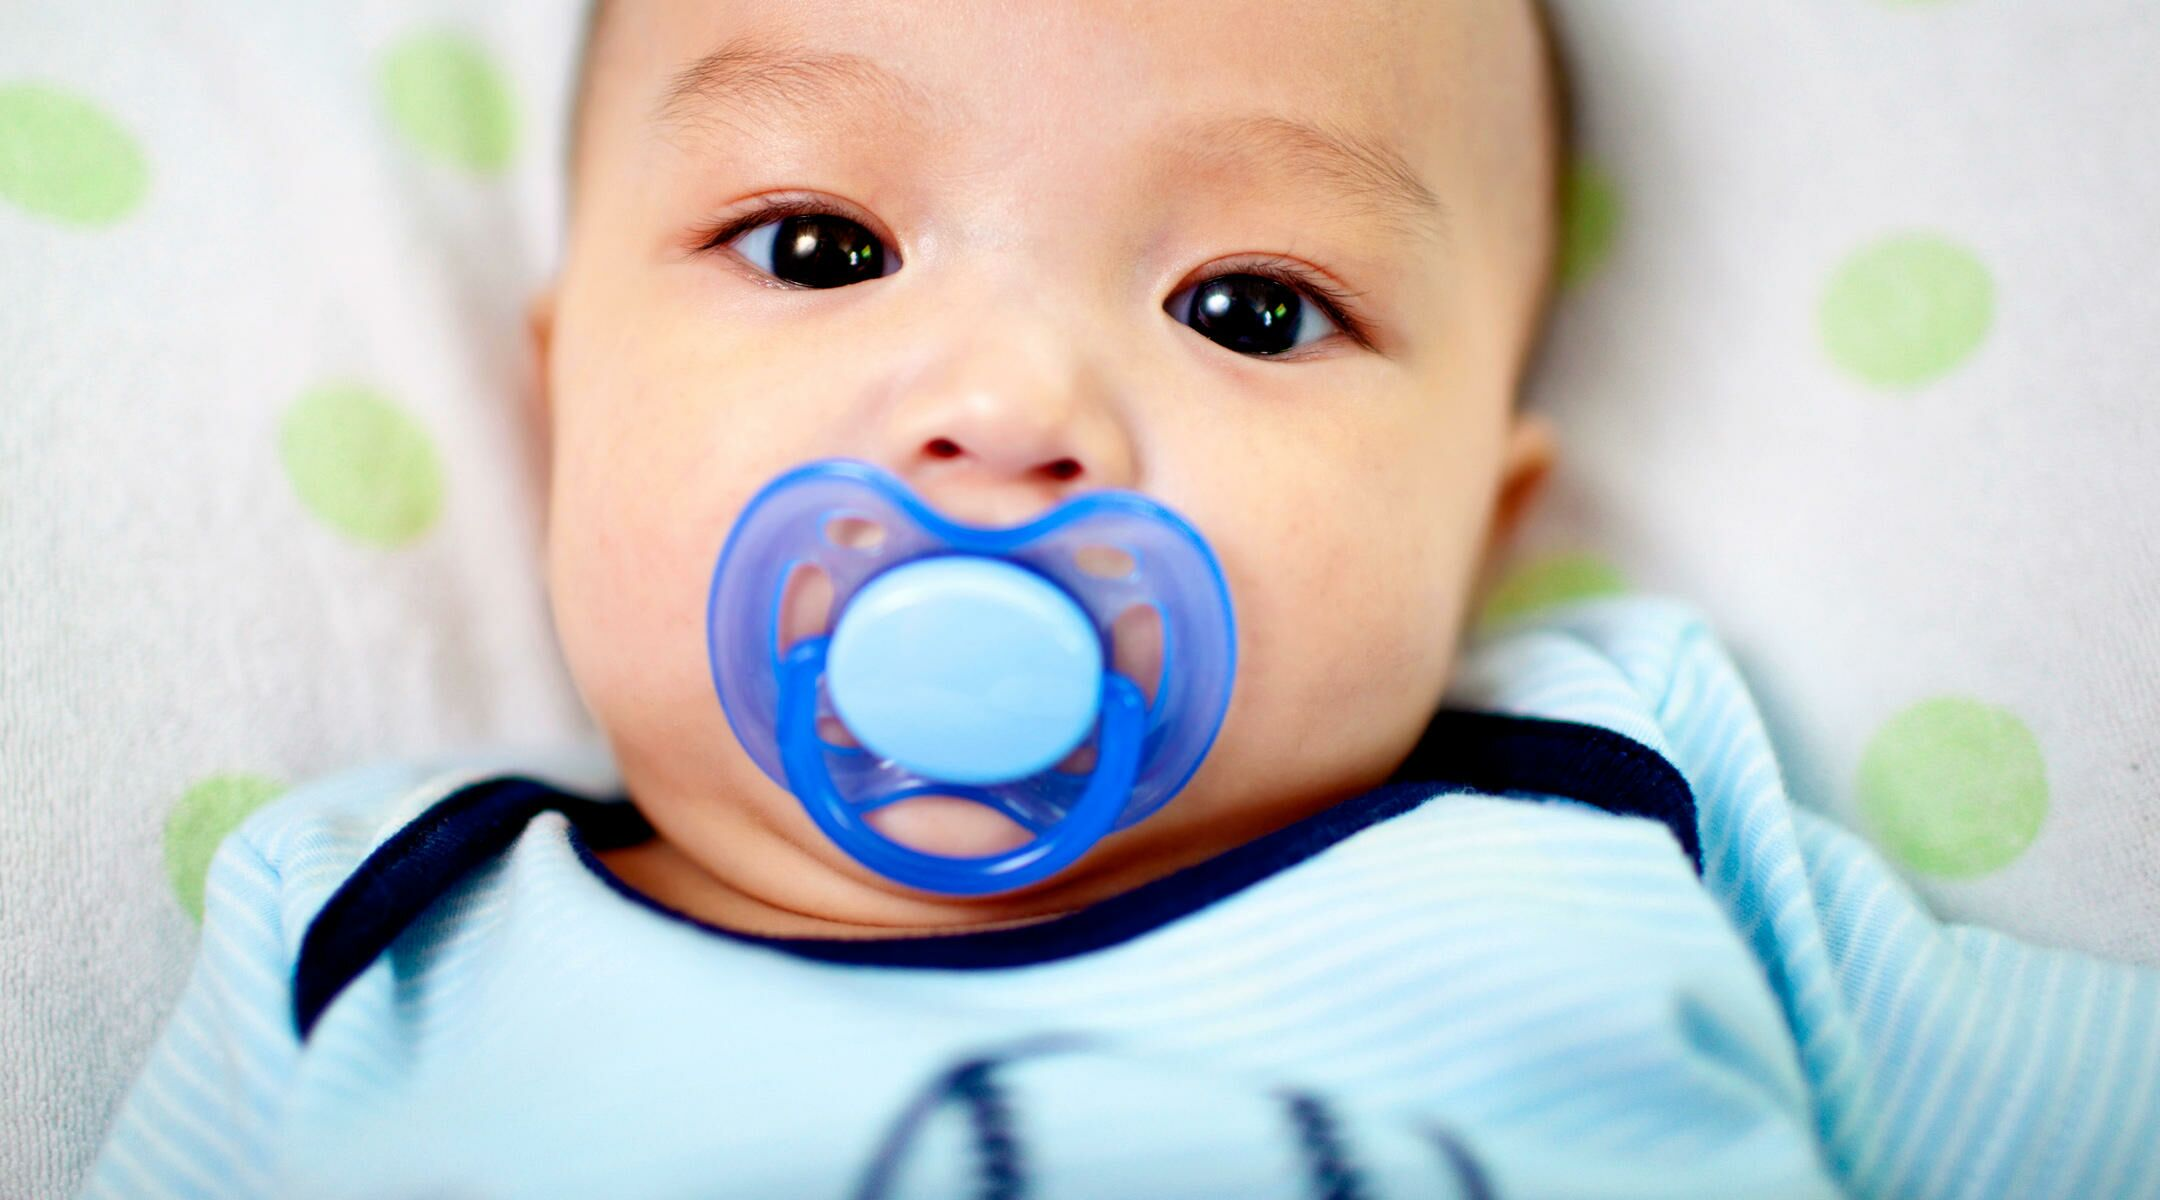 Means Espumizan for newborns: instructions for use and description of the preparation